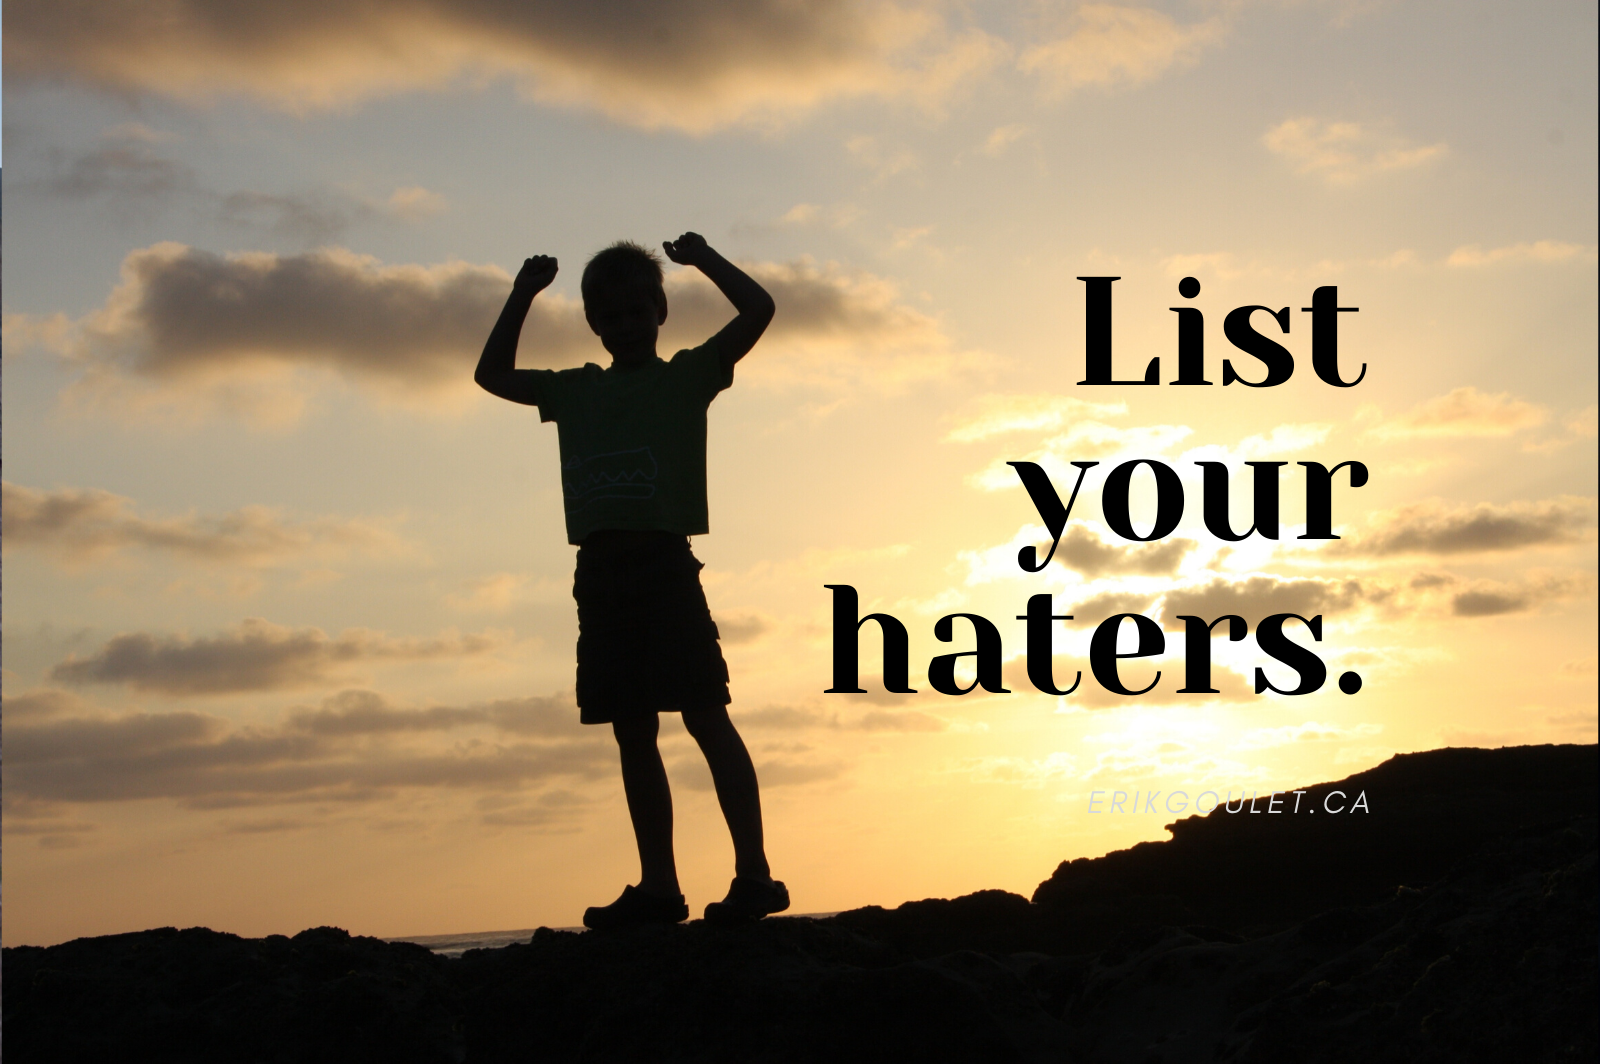 list your haters